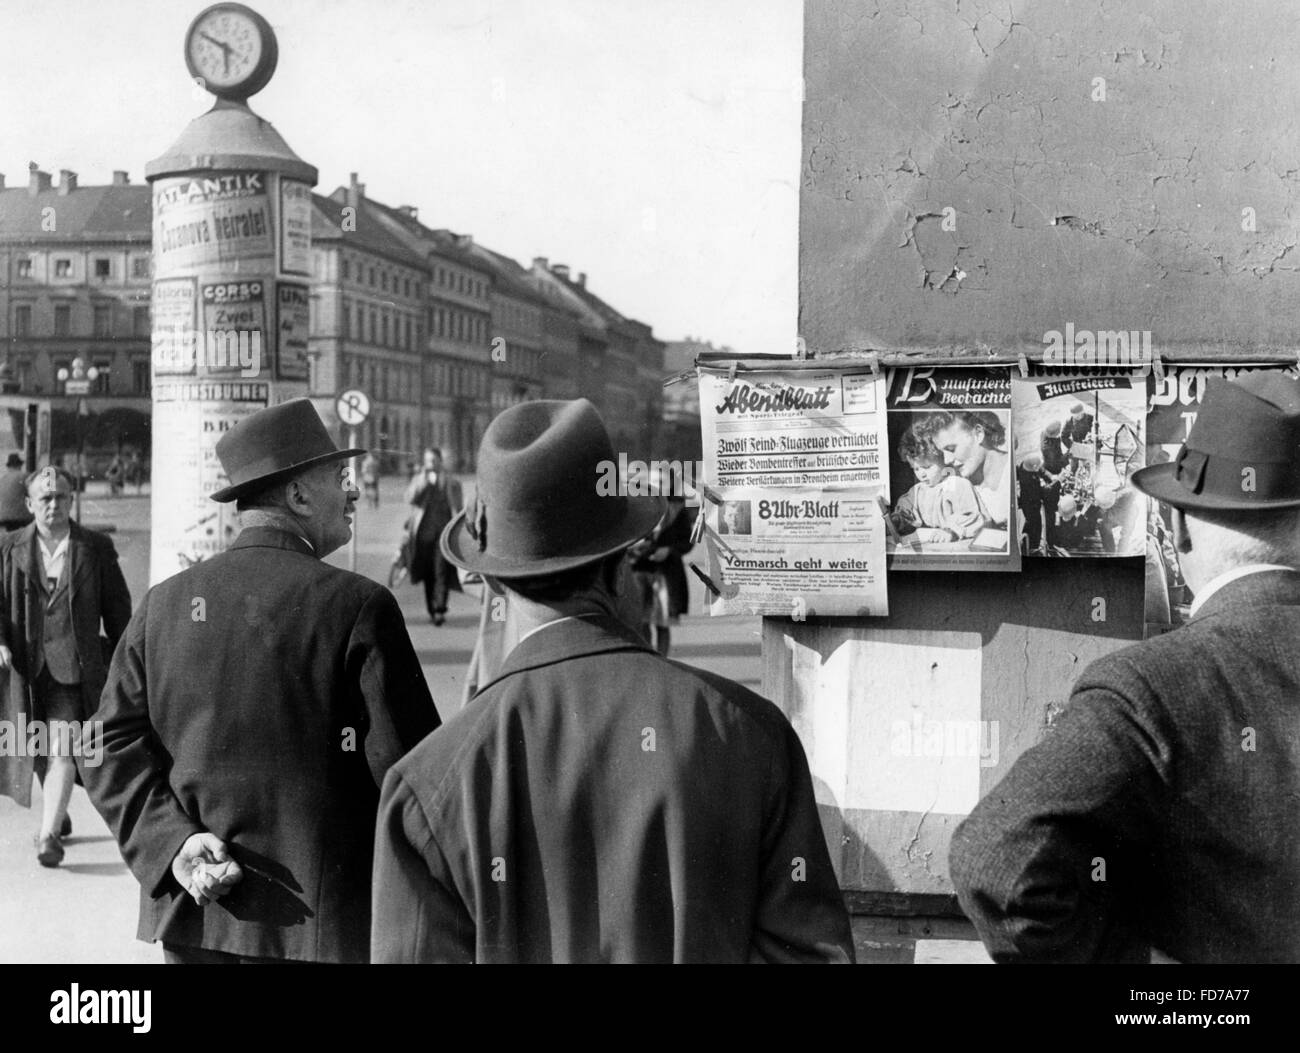 Street newspapers in WW2, 1940s - Stock Image